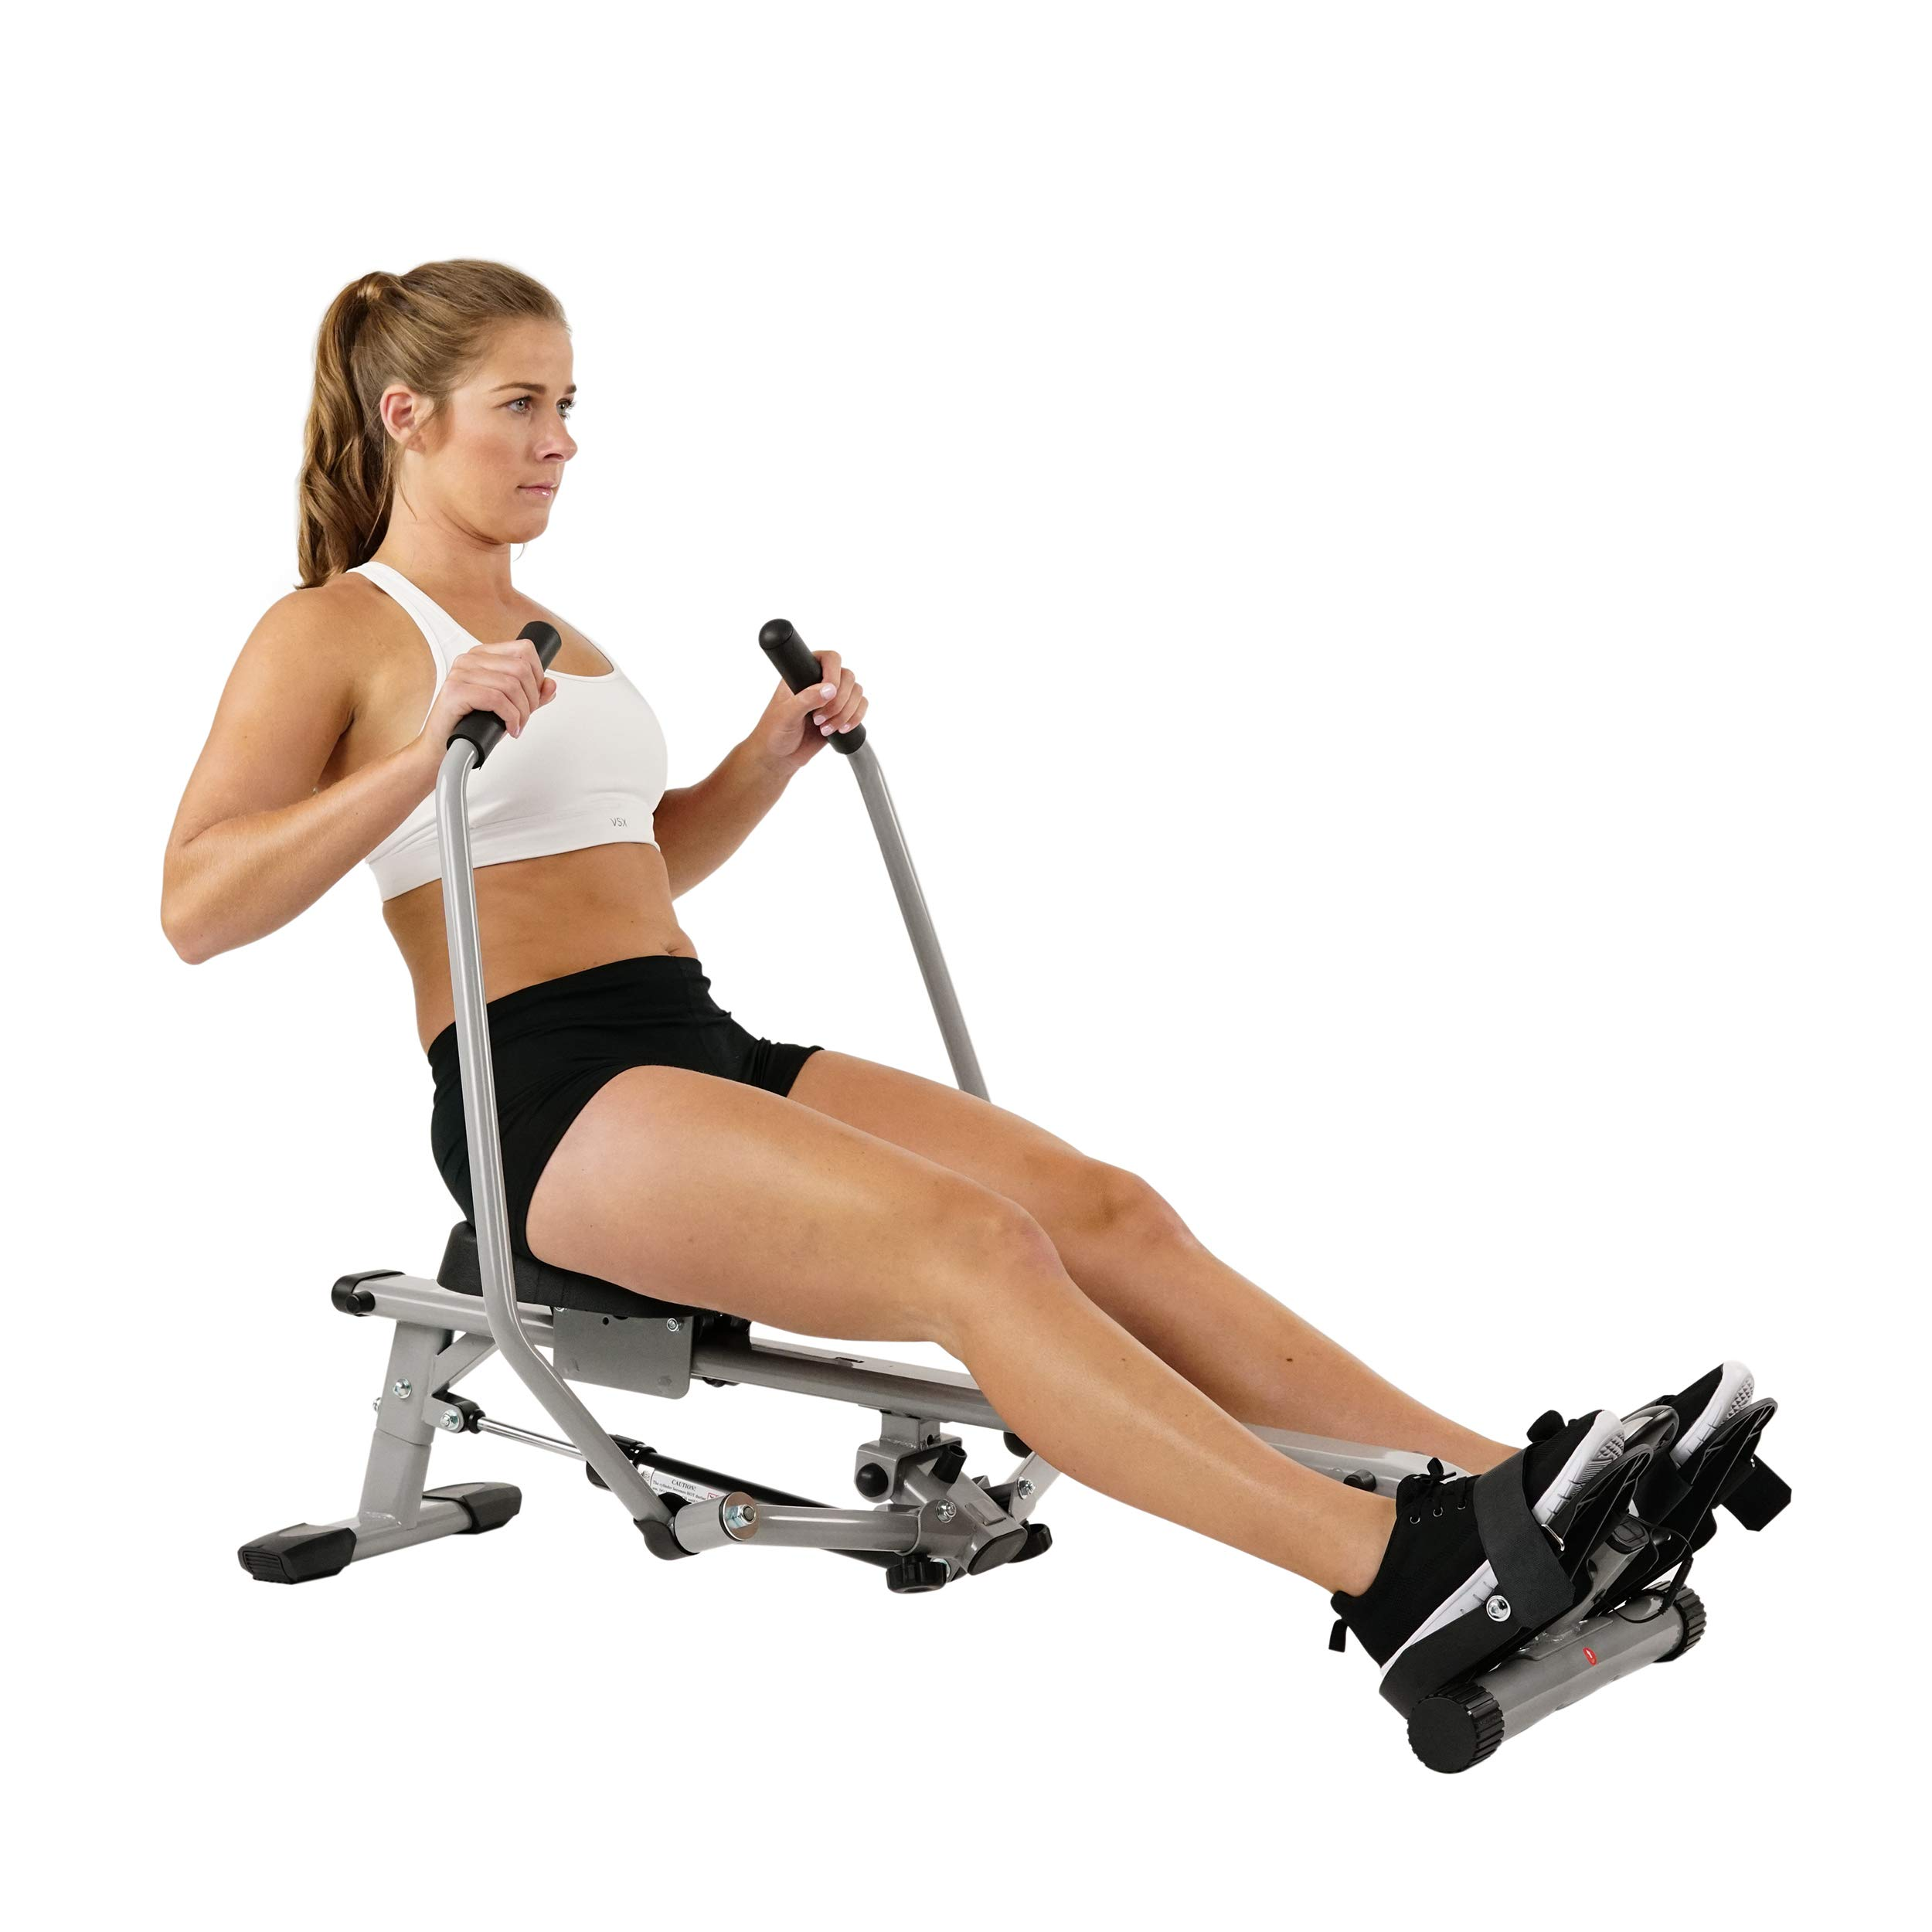 Sunny Health & Fitness SF-RW5639 Full Motion Rowing Machine Rower w/ 350 lb Weight Capacity and LCD Monitor by Sunny Health & Fitness (Image #1)